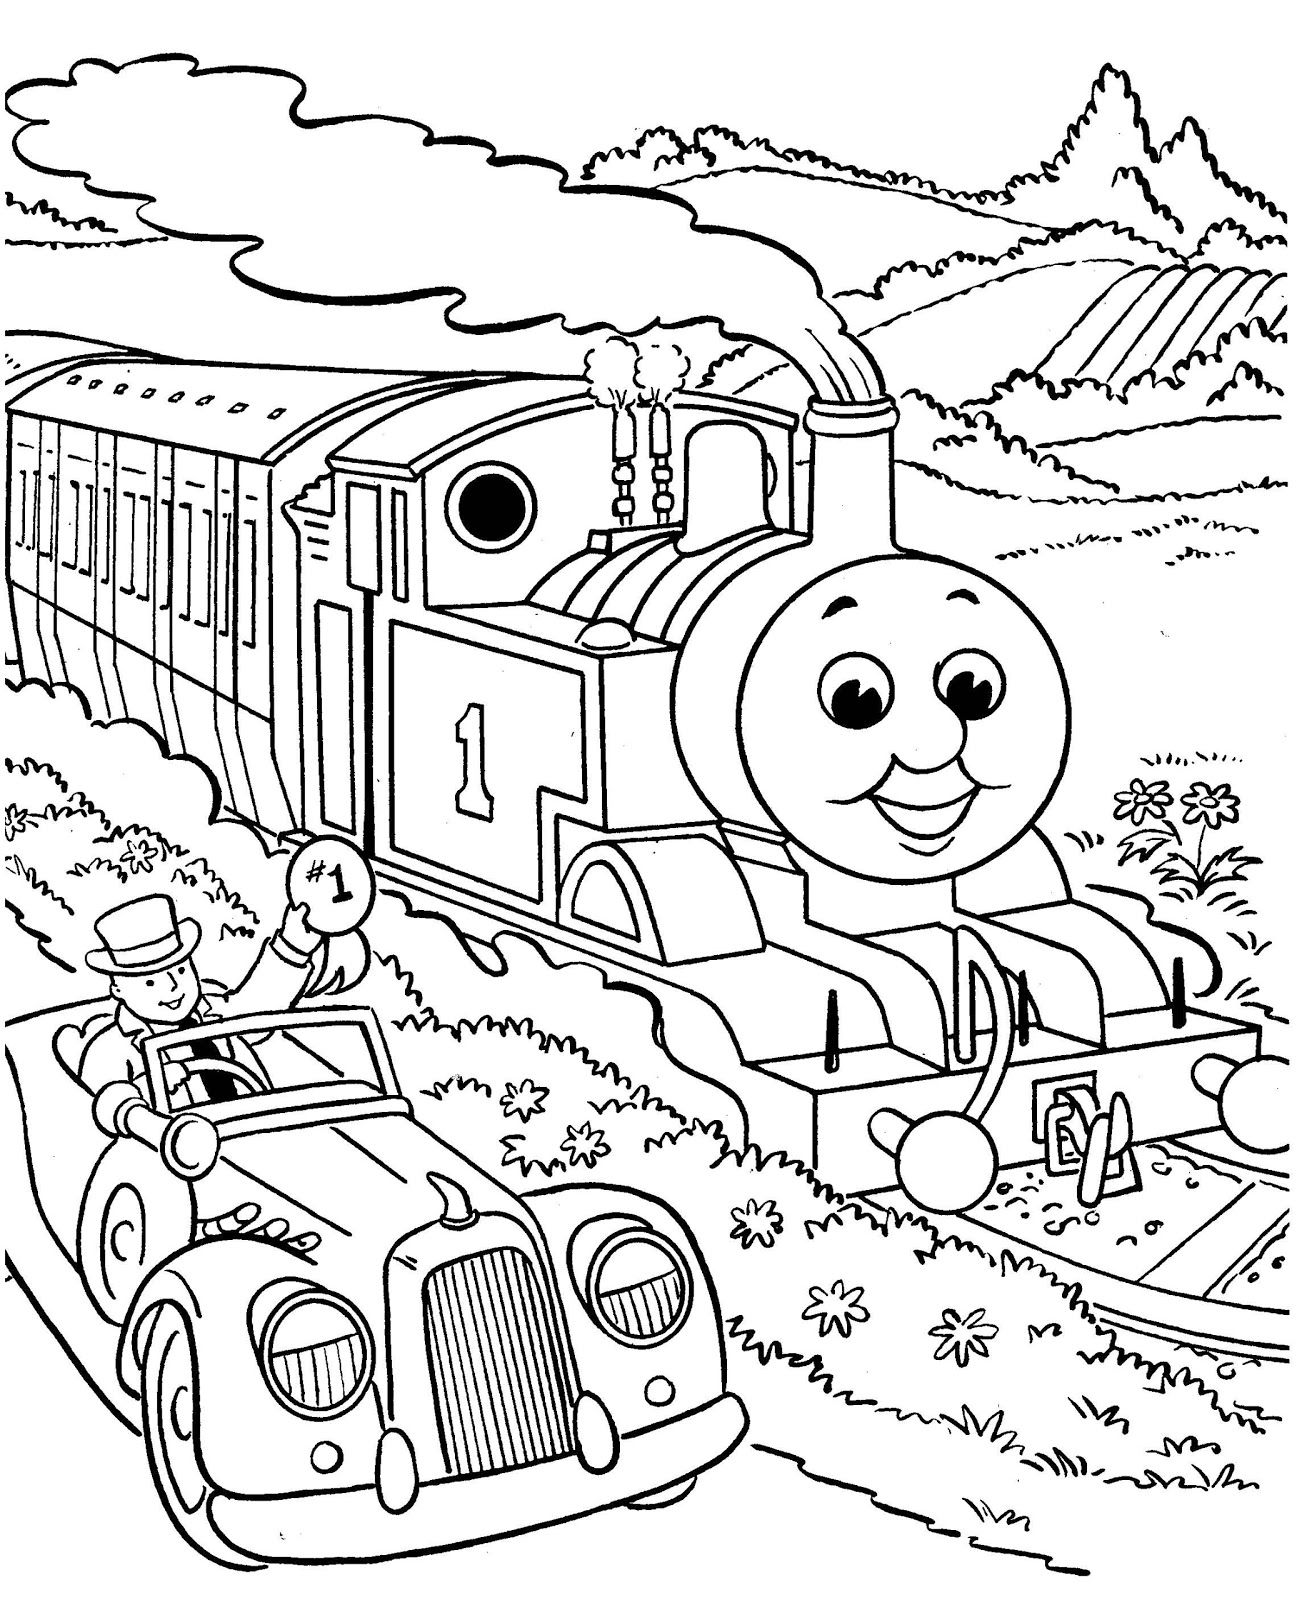 Printable coloring pages tanks - Free Printable Coloring Pages For All Ages